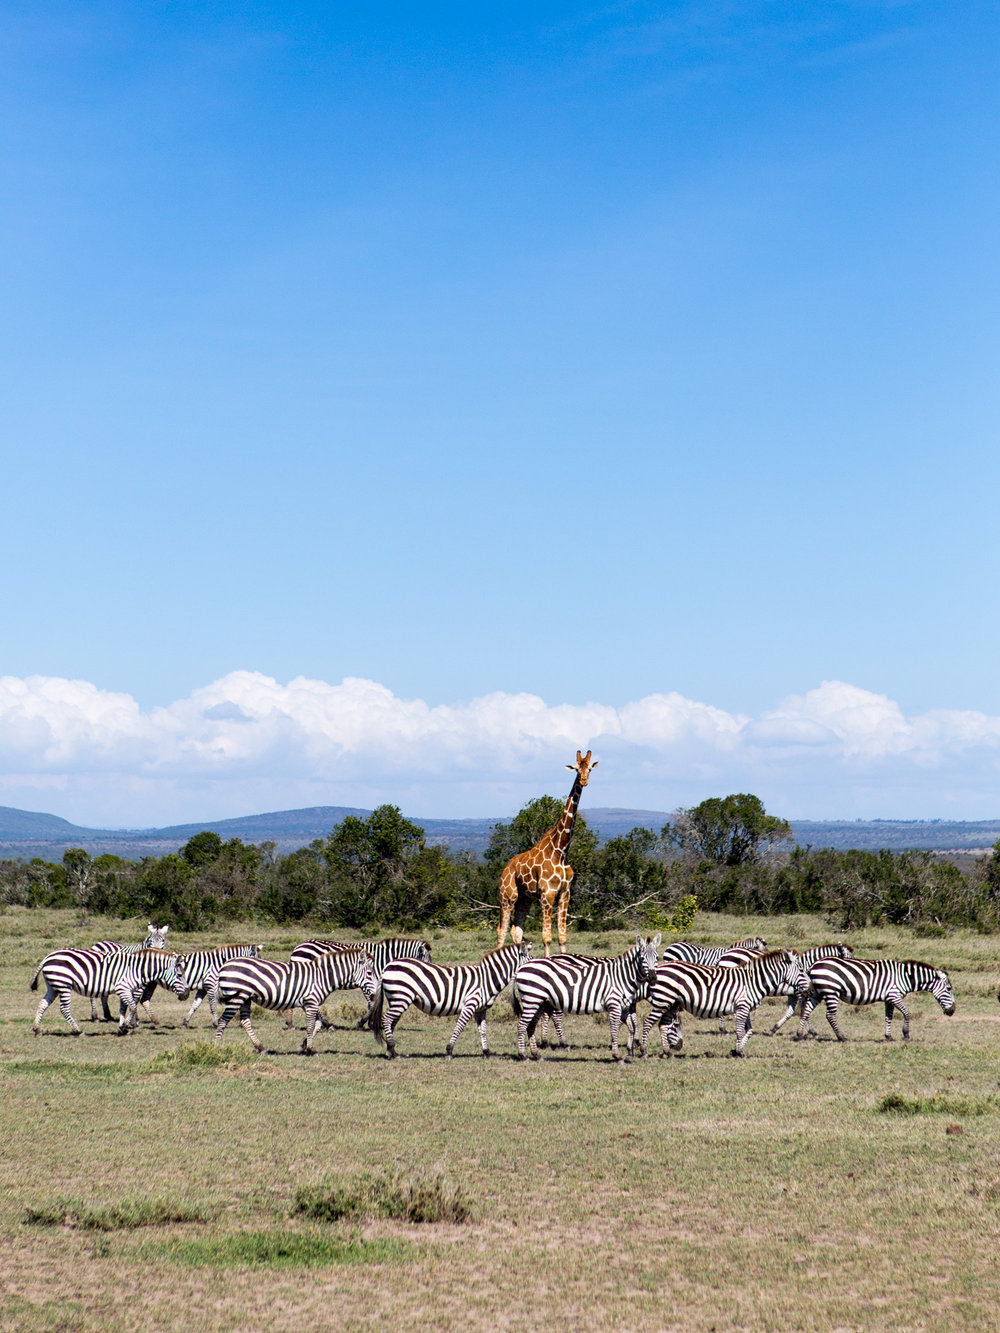 On the plains at our Safari Yoga Retreat